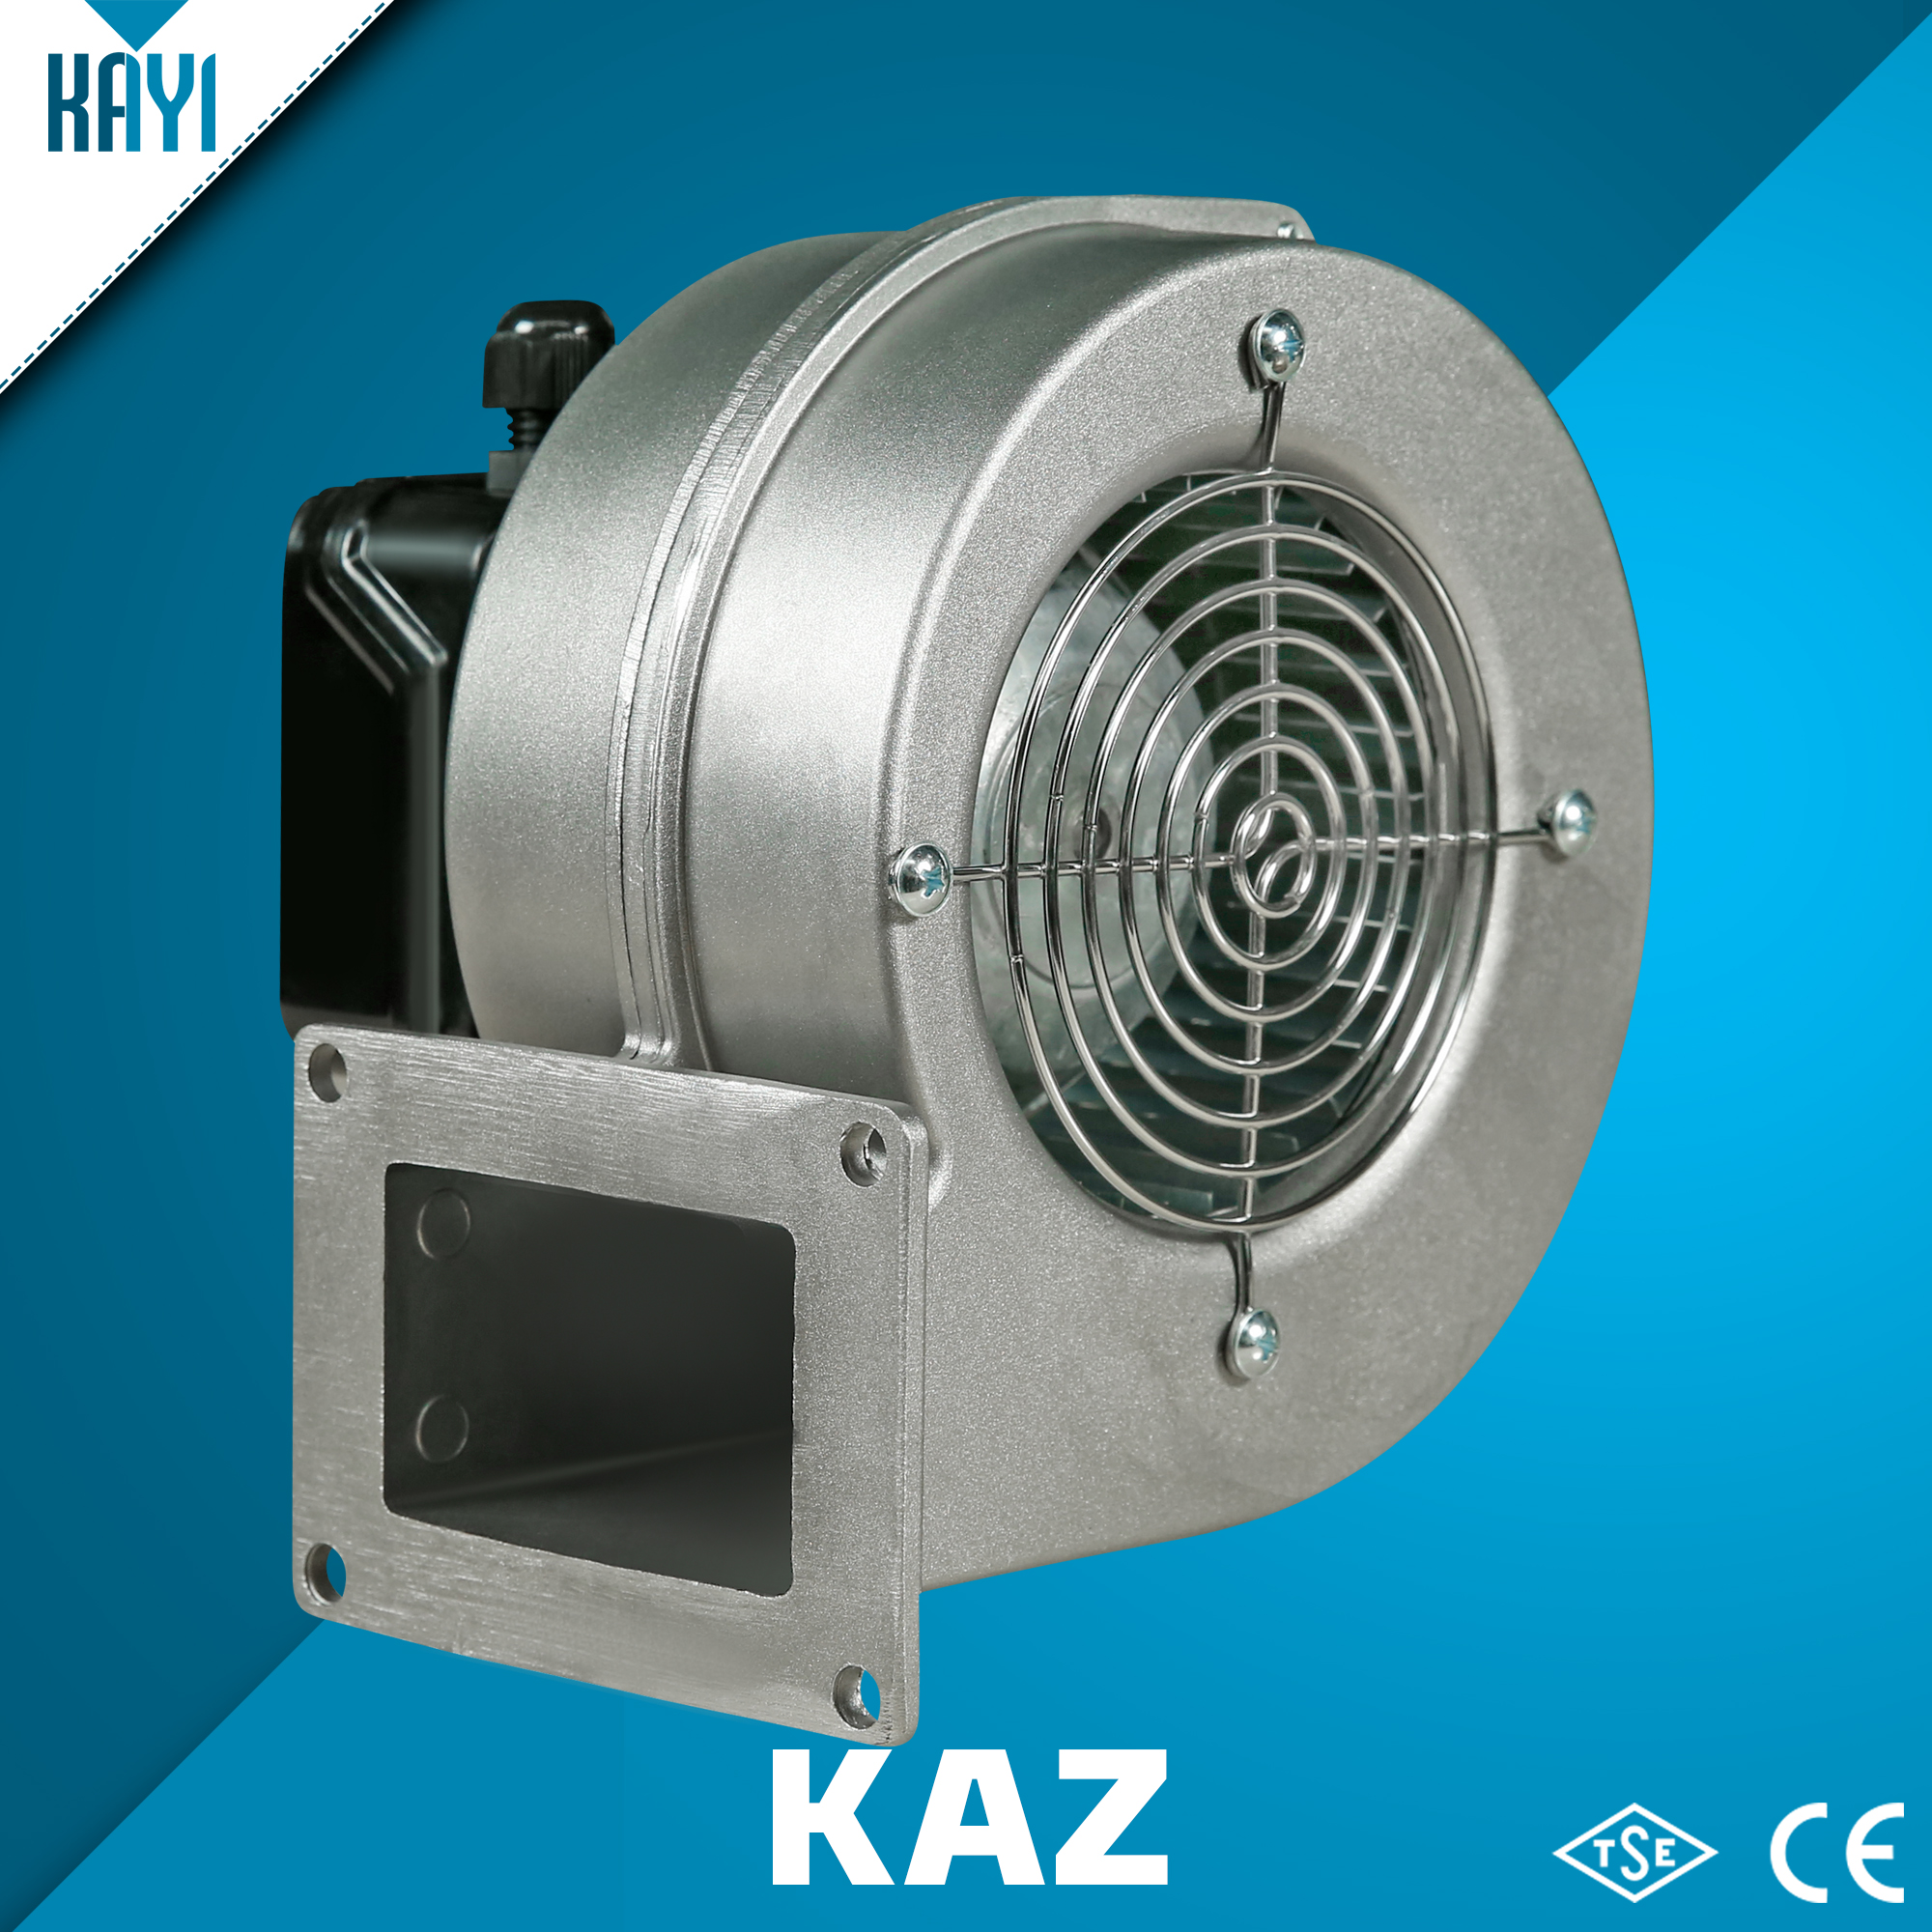 KAZ - Single Inlet Centrifugal Fan With Aluminium Body